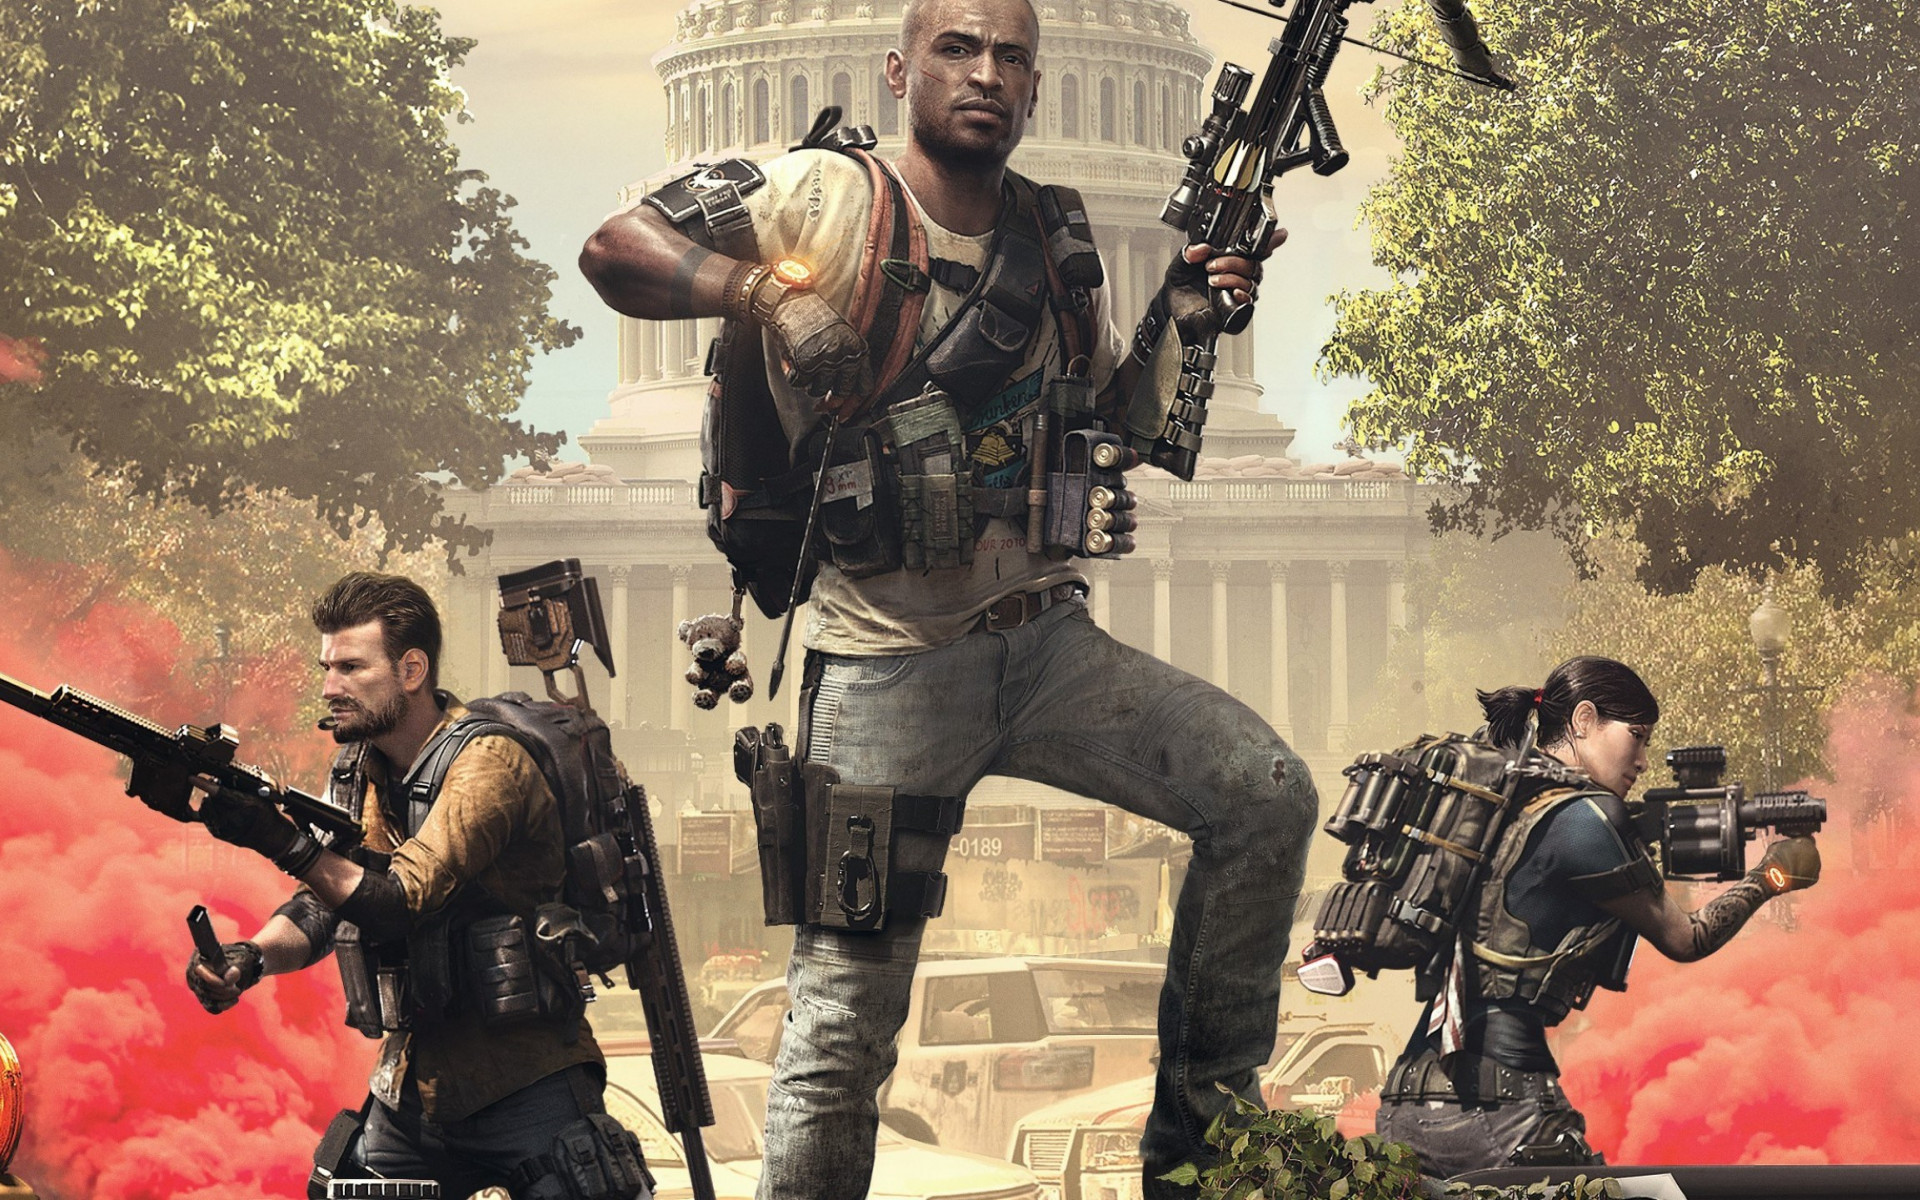 Tom Clancy's The Division 2 Episodes 2019 wallpaper 1920x1200